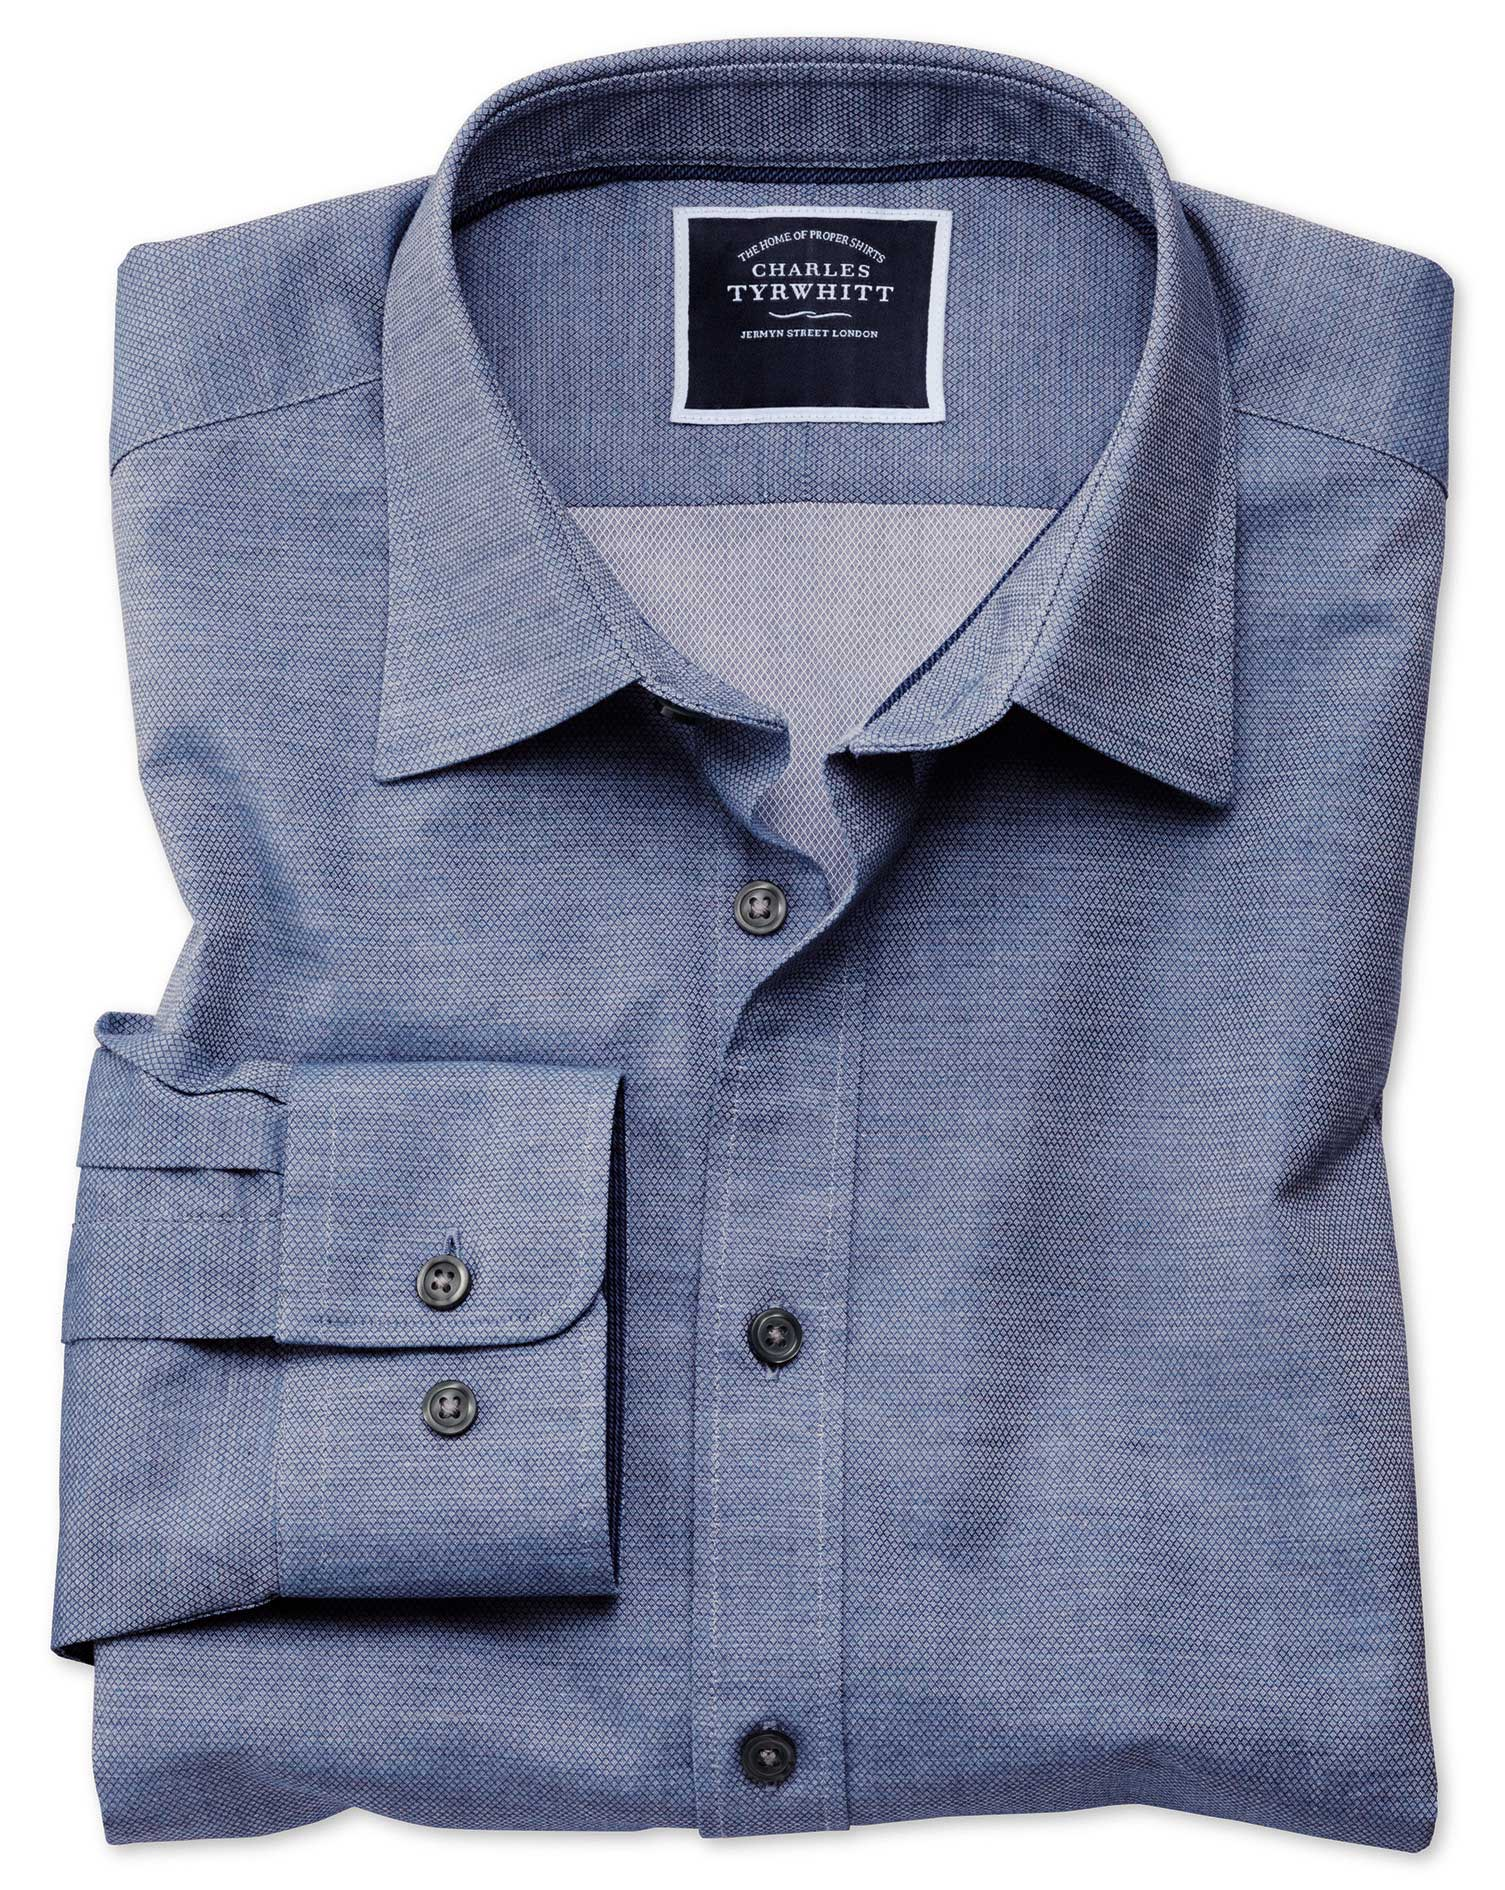 Classic Fit Blue Soft Textured Cotton Shirt Single Cuff Size XXXL by Charles Tyrwhitt